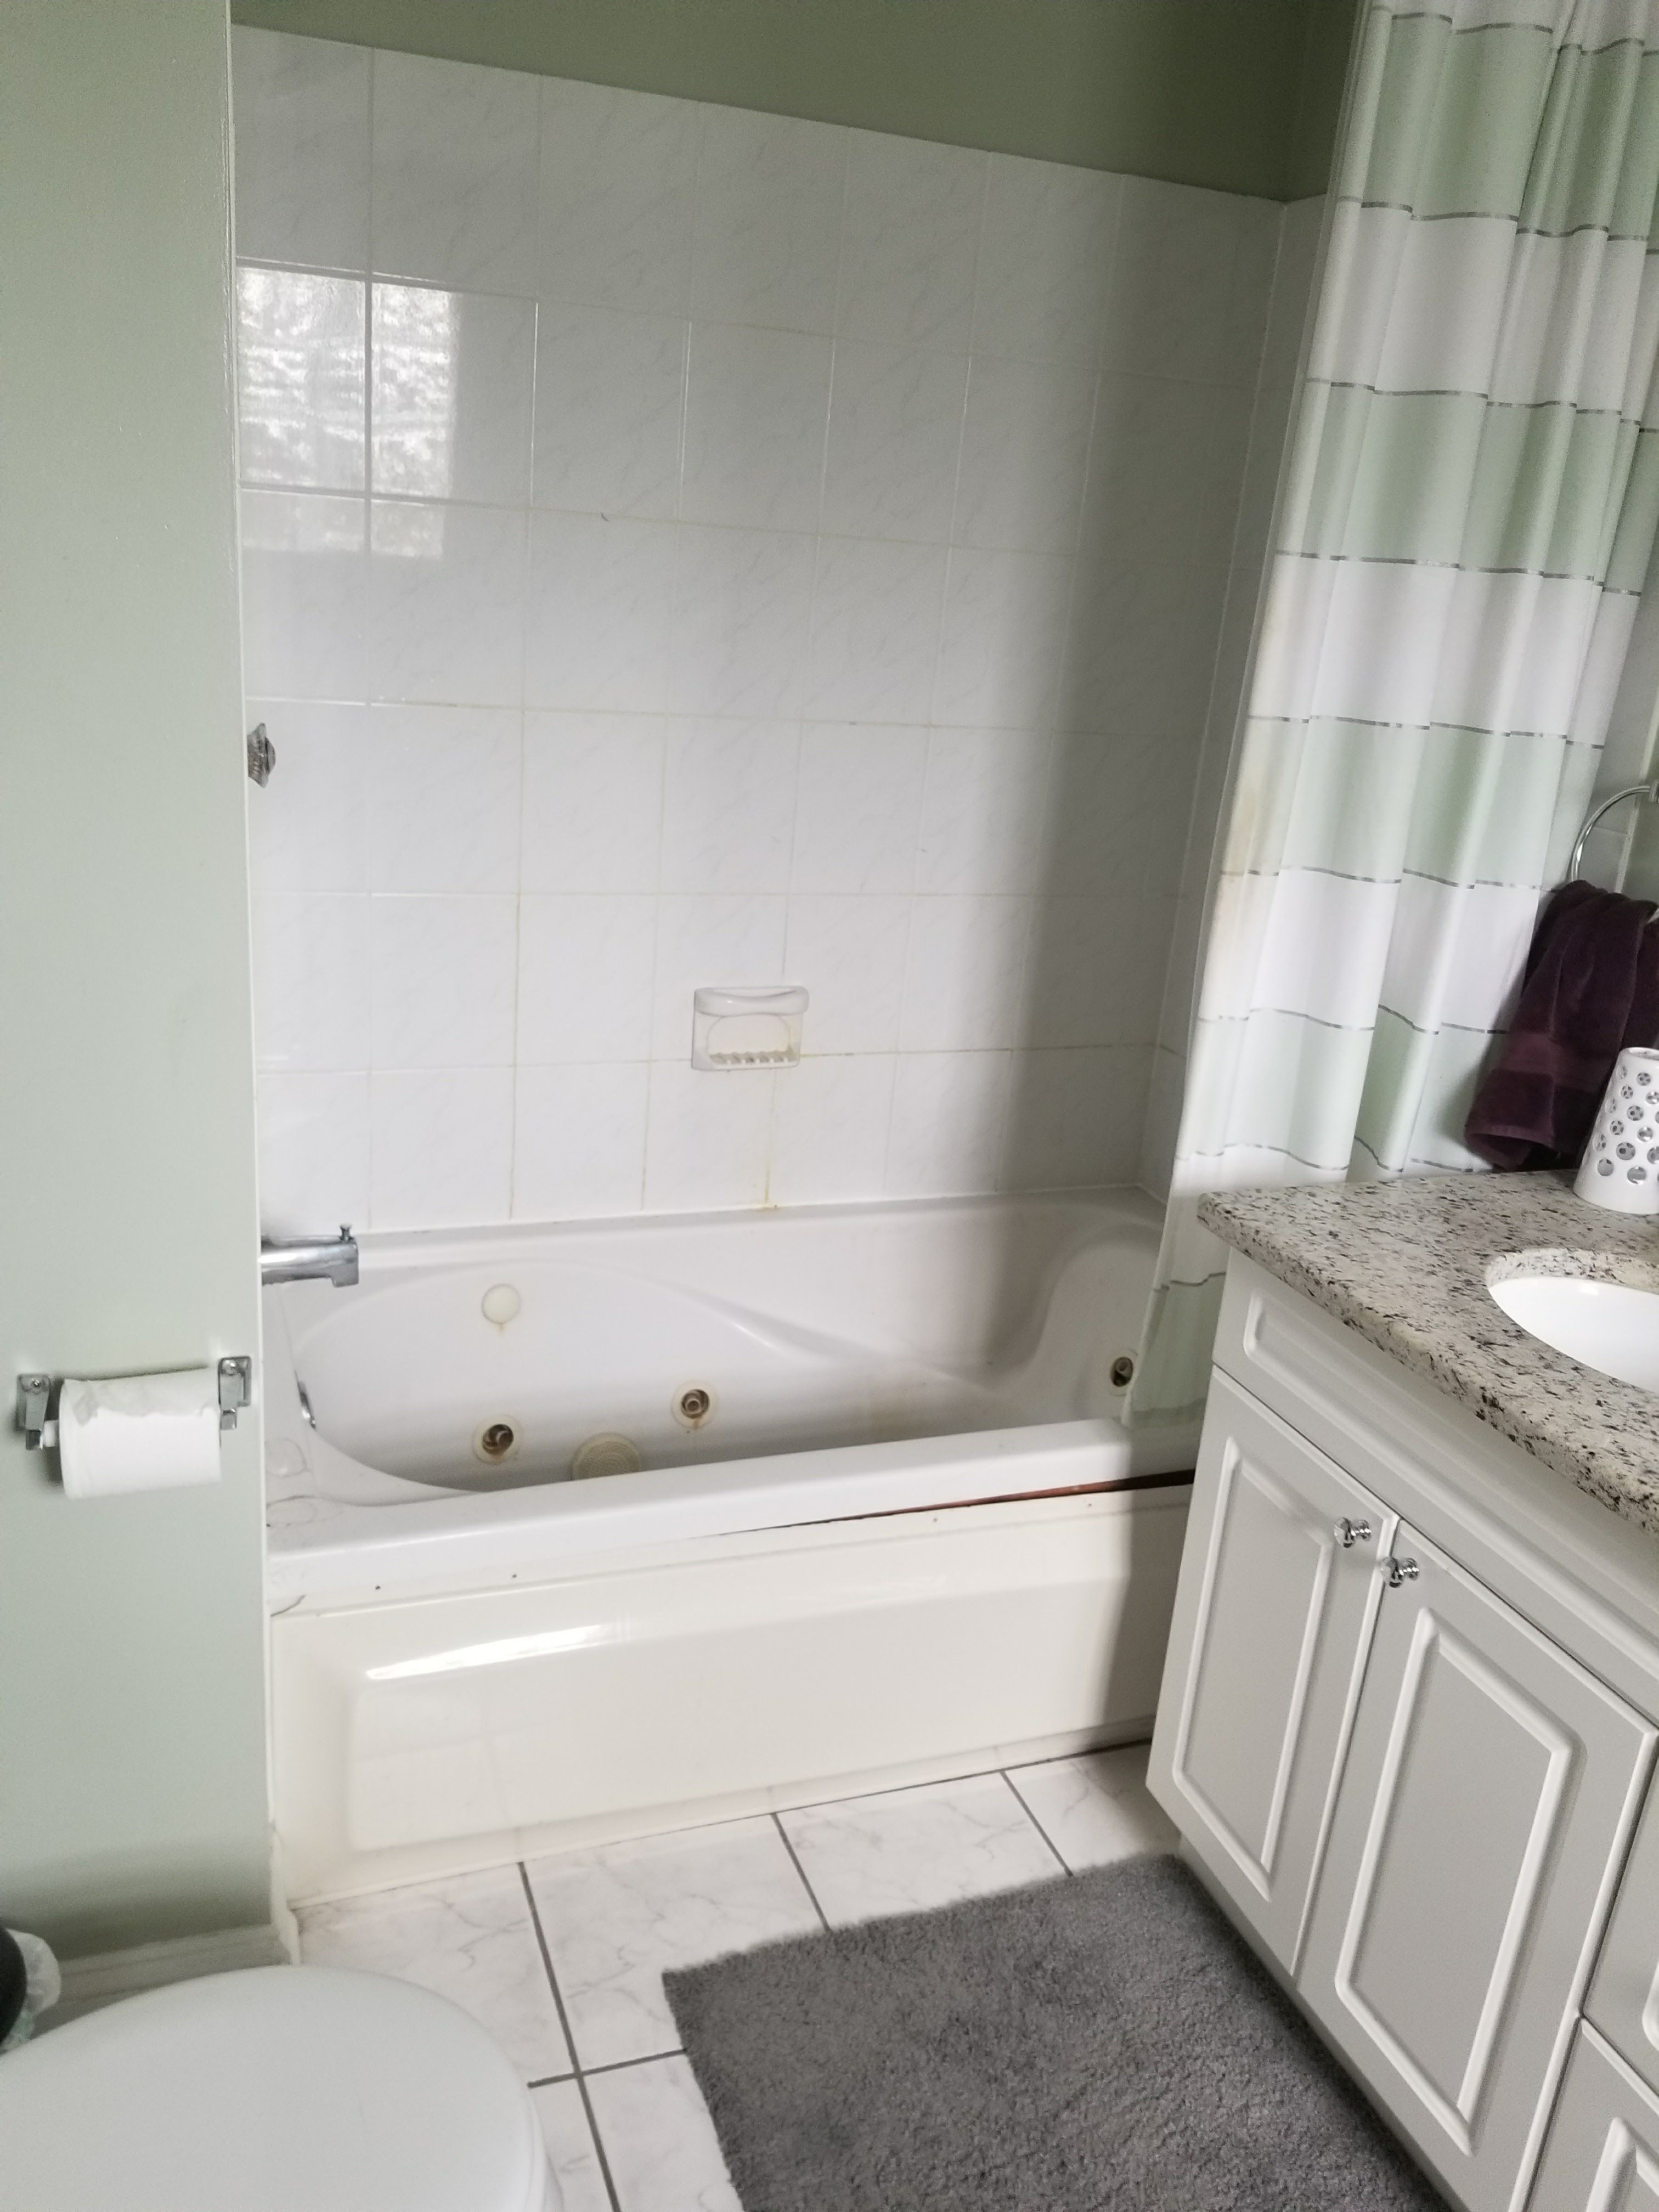 Click The Link To Our Sister Company Garys Home And Bath - Gary's home and bathroom remodeling